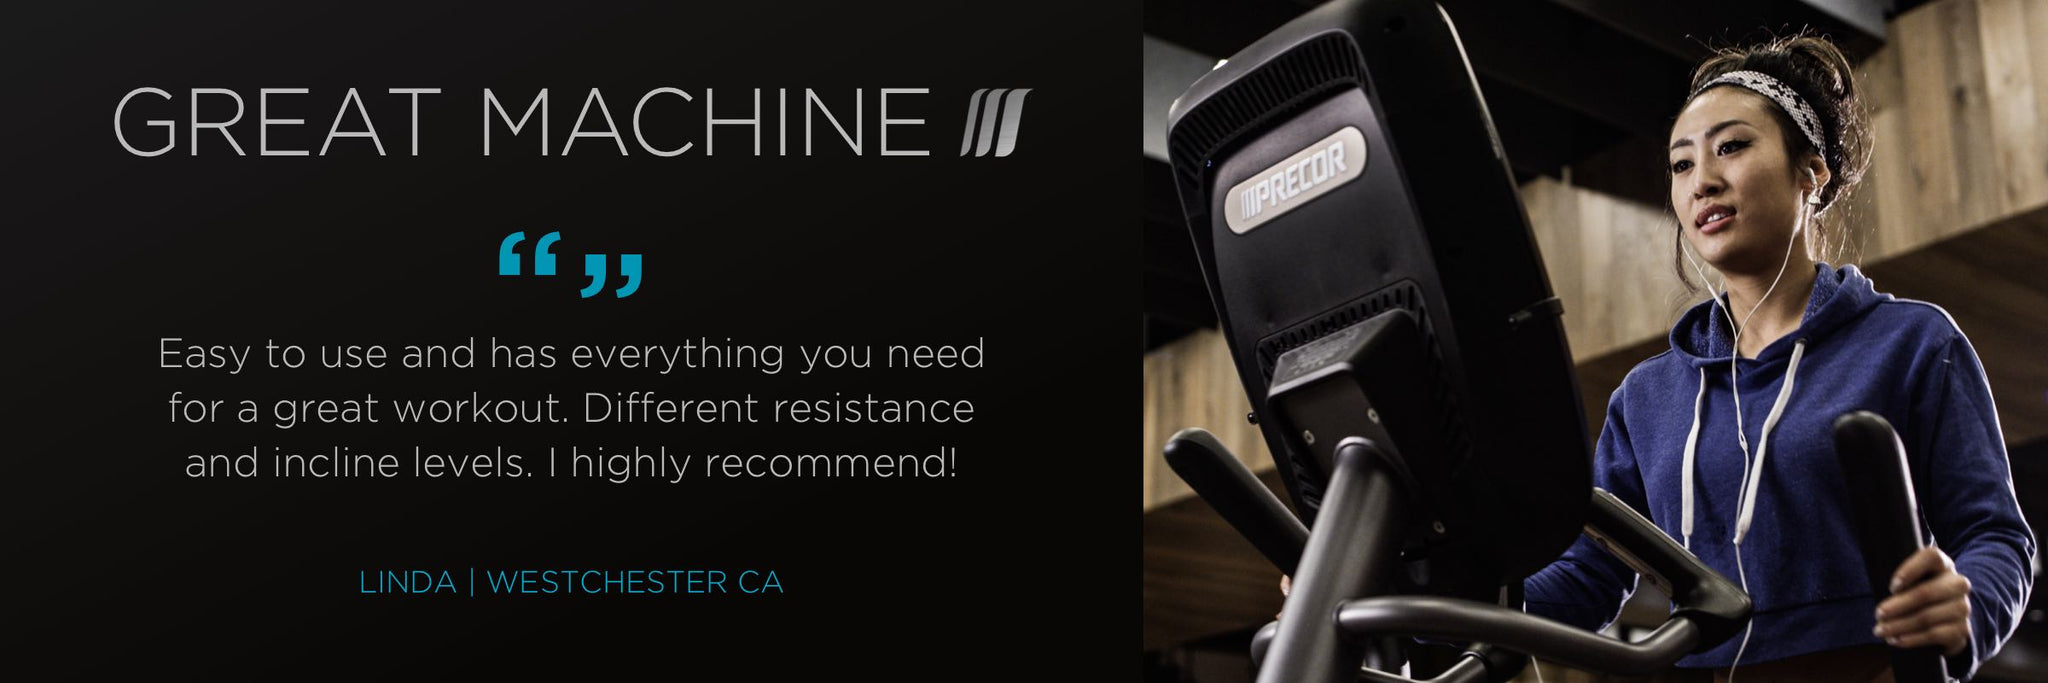 Precor elliptical machine easy to use resistance levels and incline